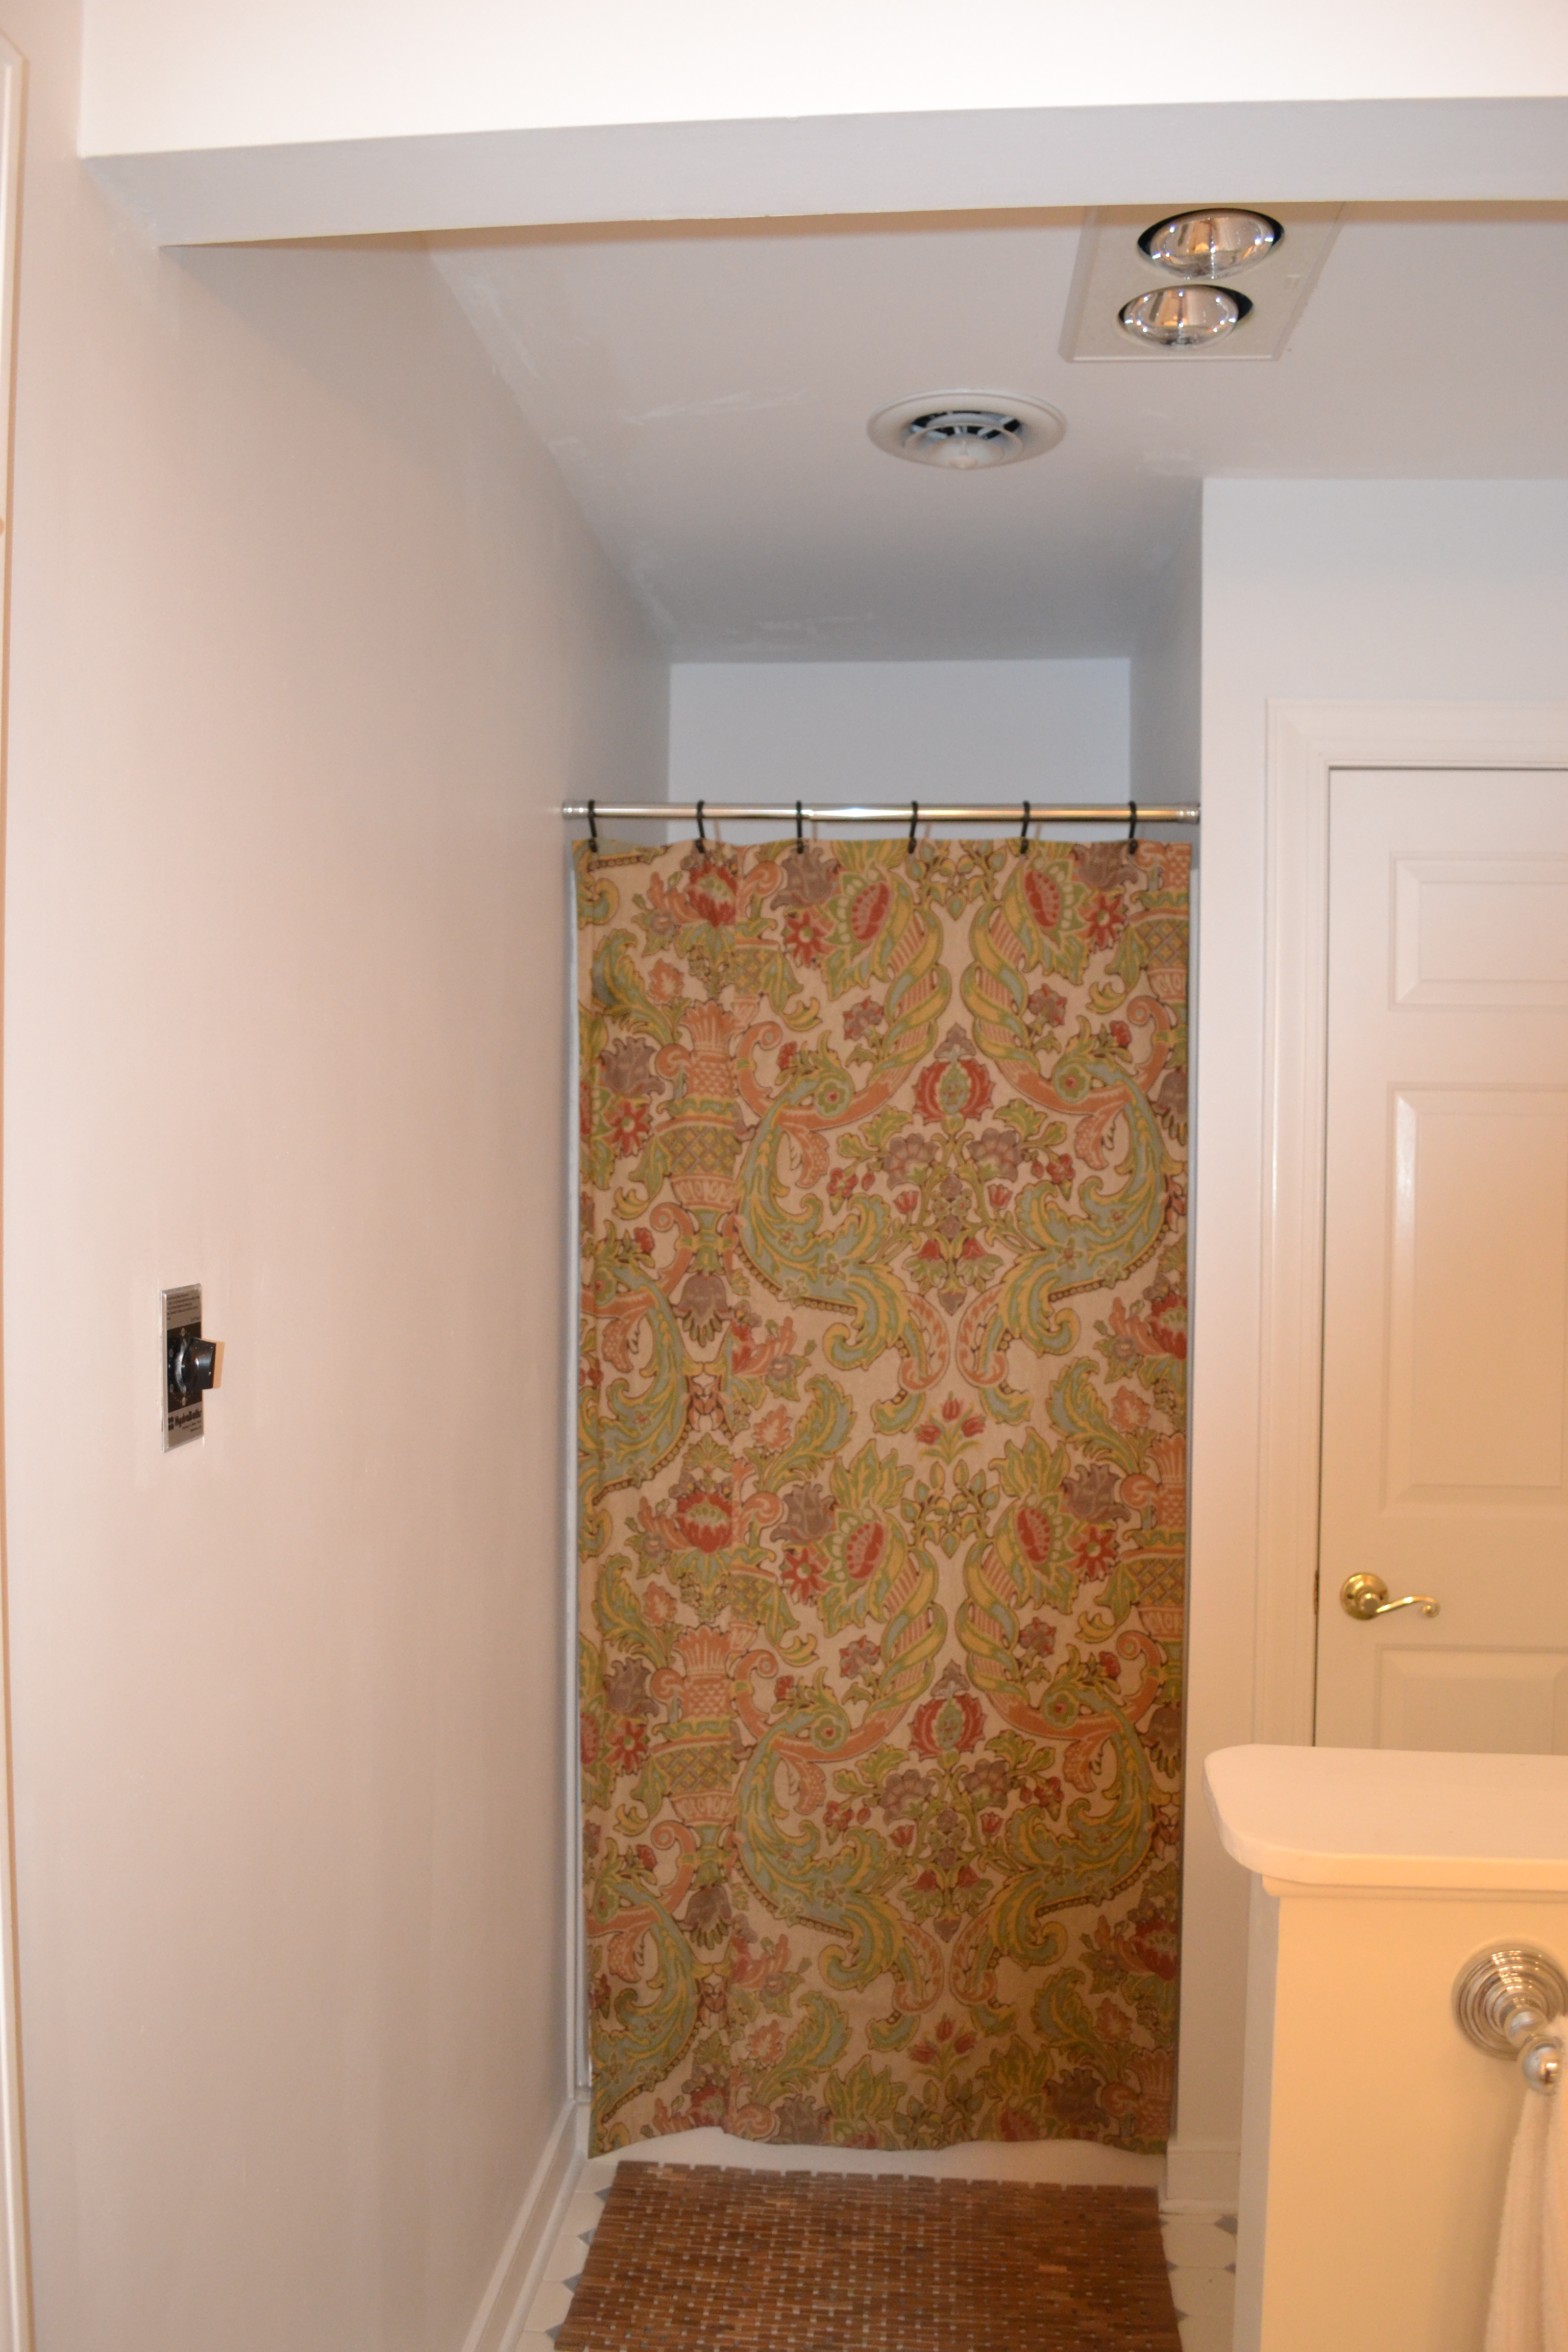 Shower Stall Curtain Rod.Small Shower Stall Curtain Rod